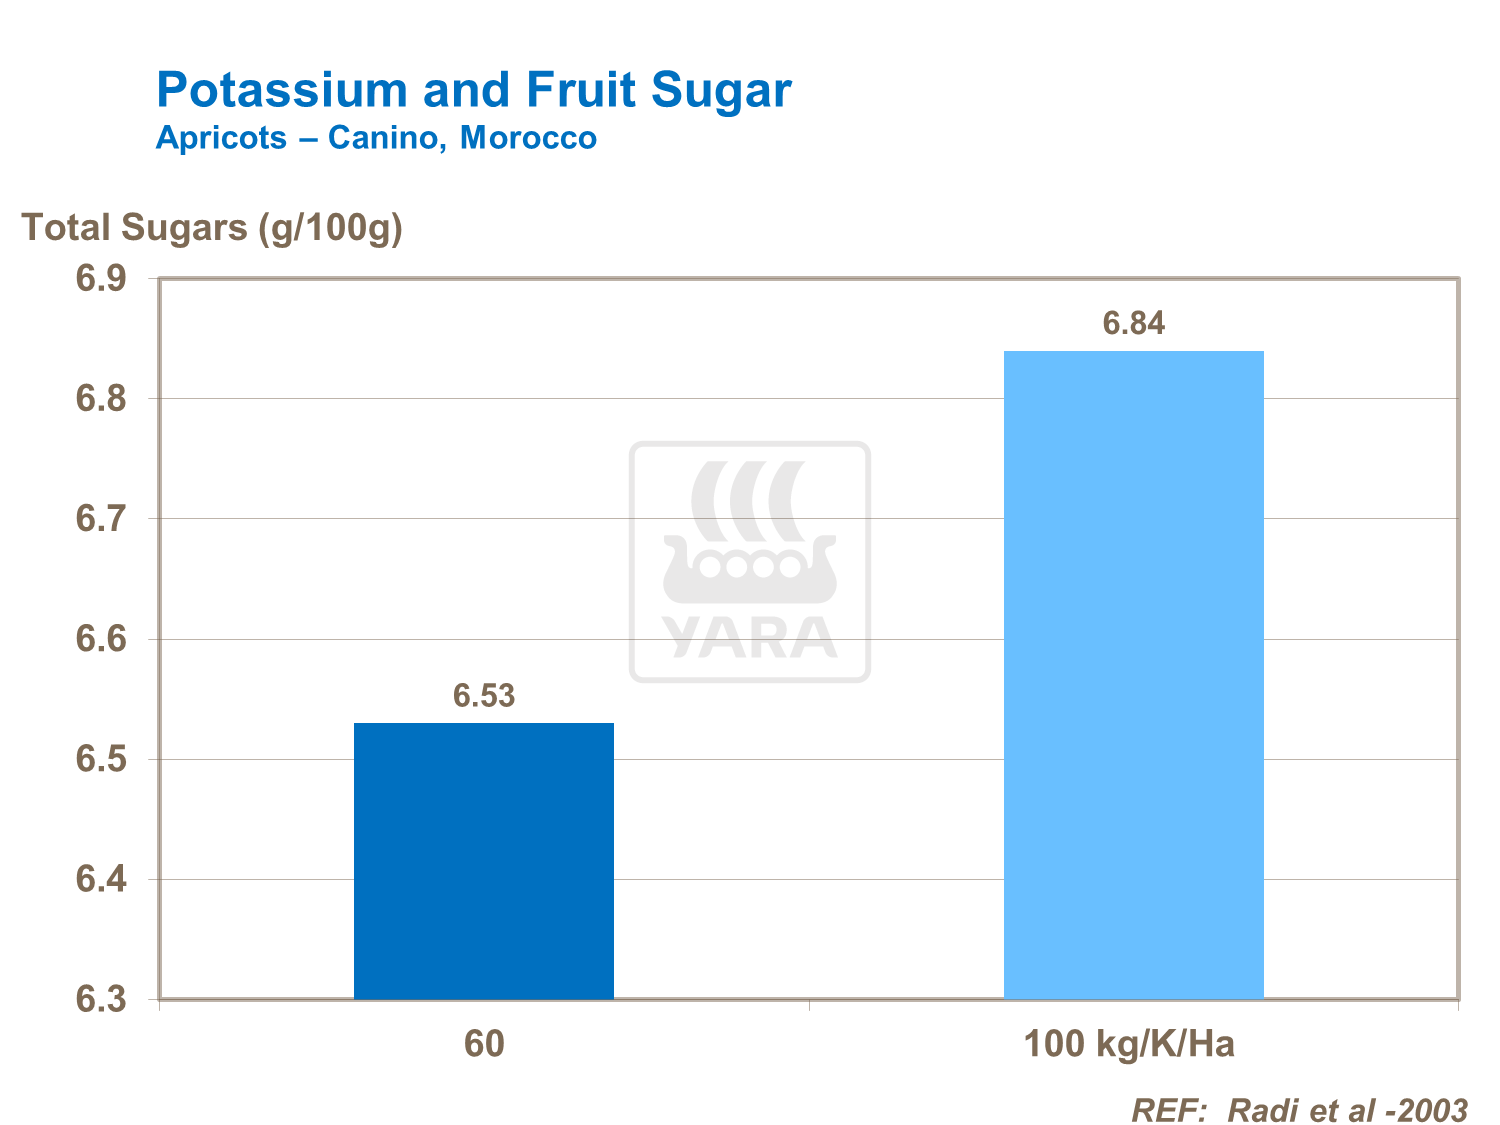 Effect of potassium on apricot sugar levels